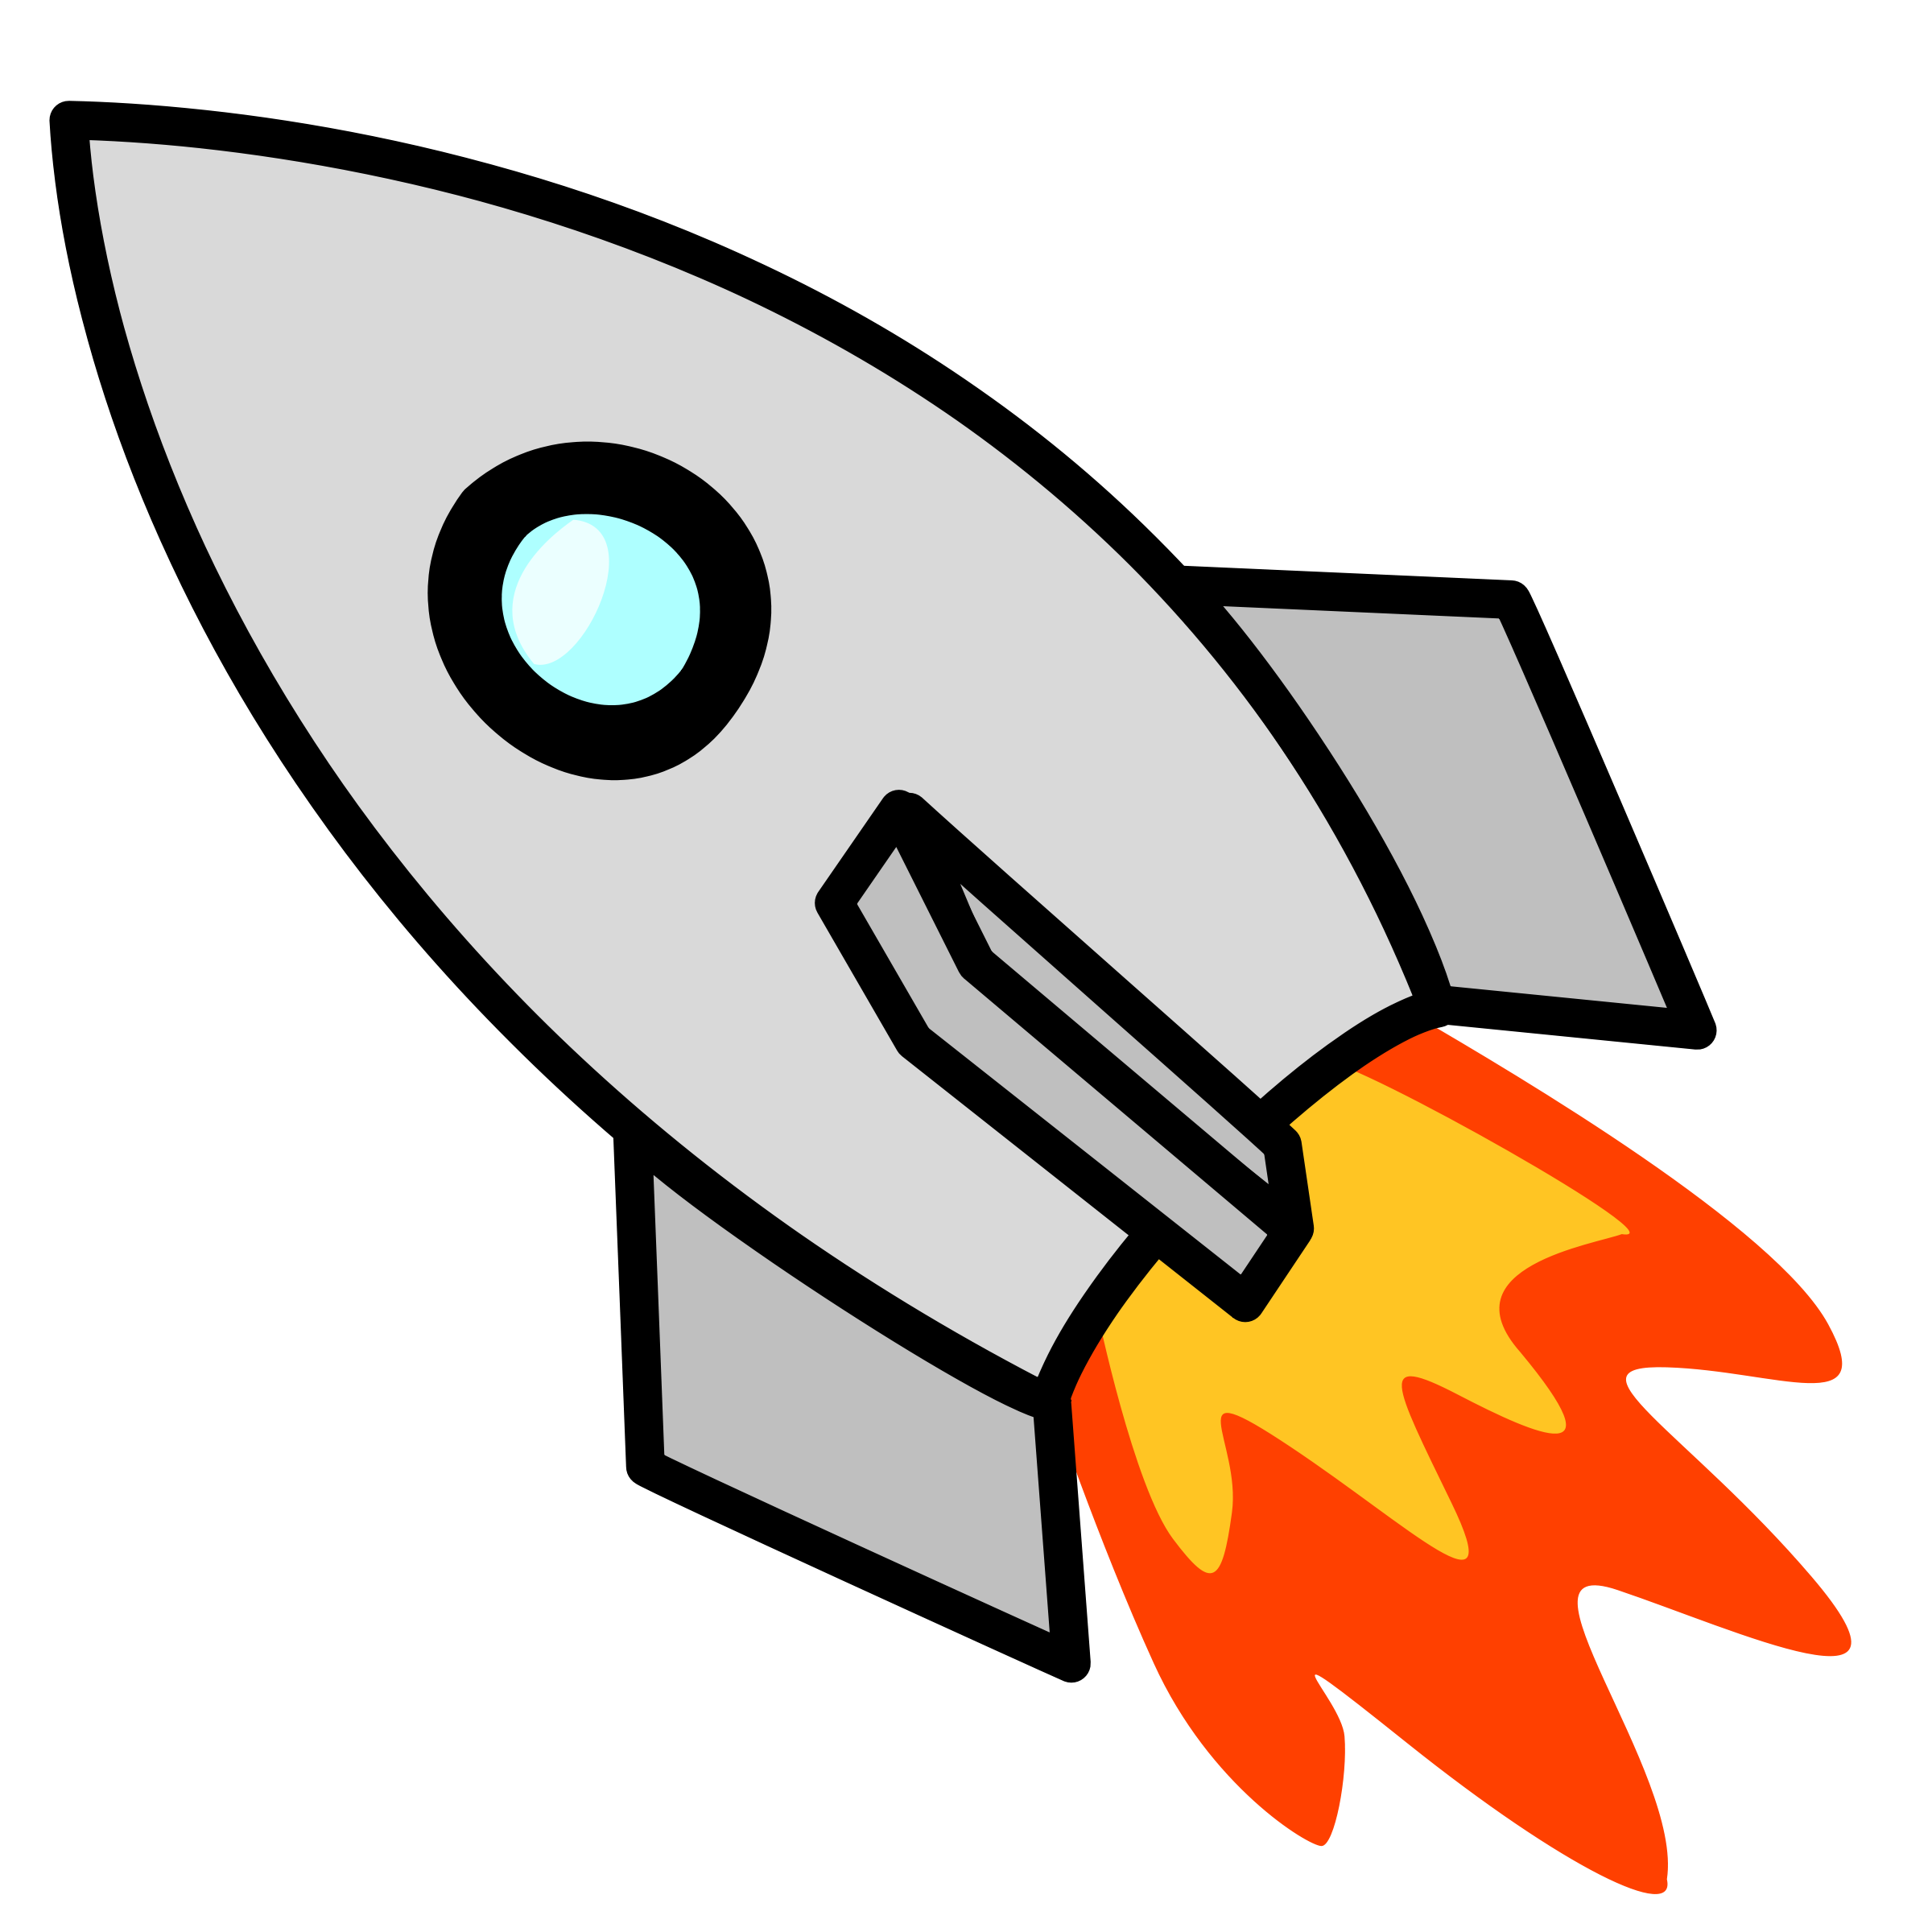 medium resolution of images for cute rocket clipart